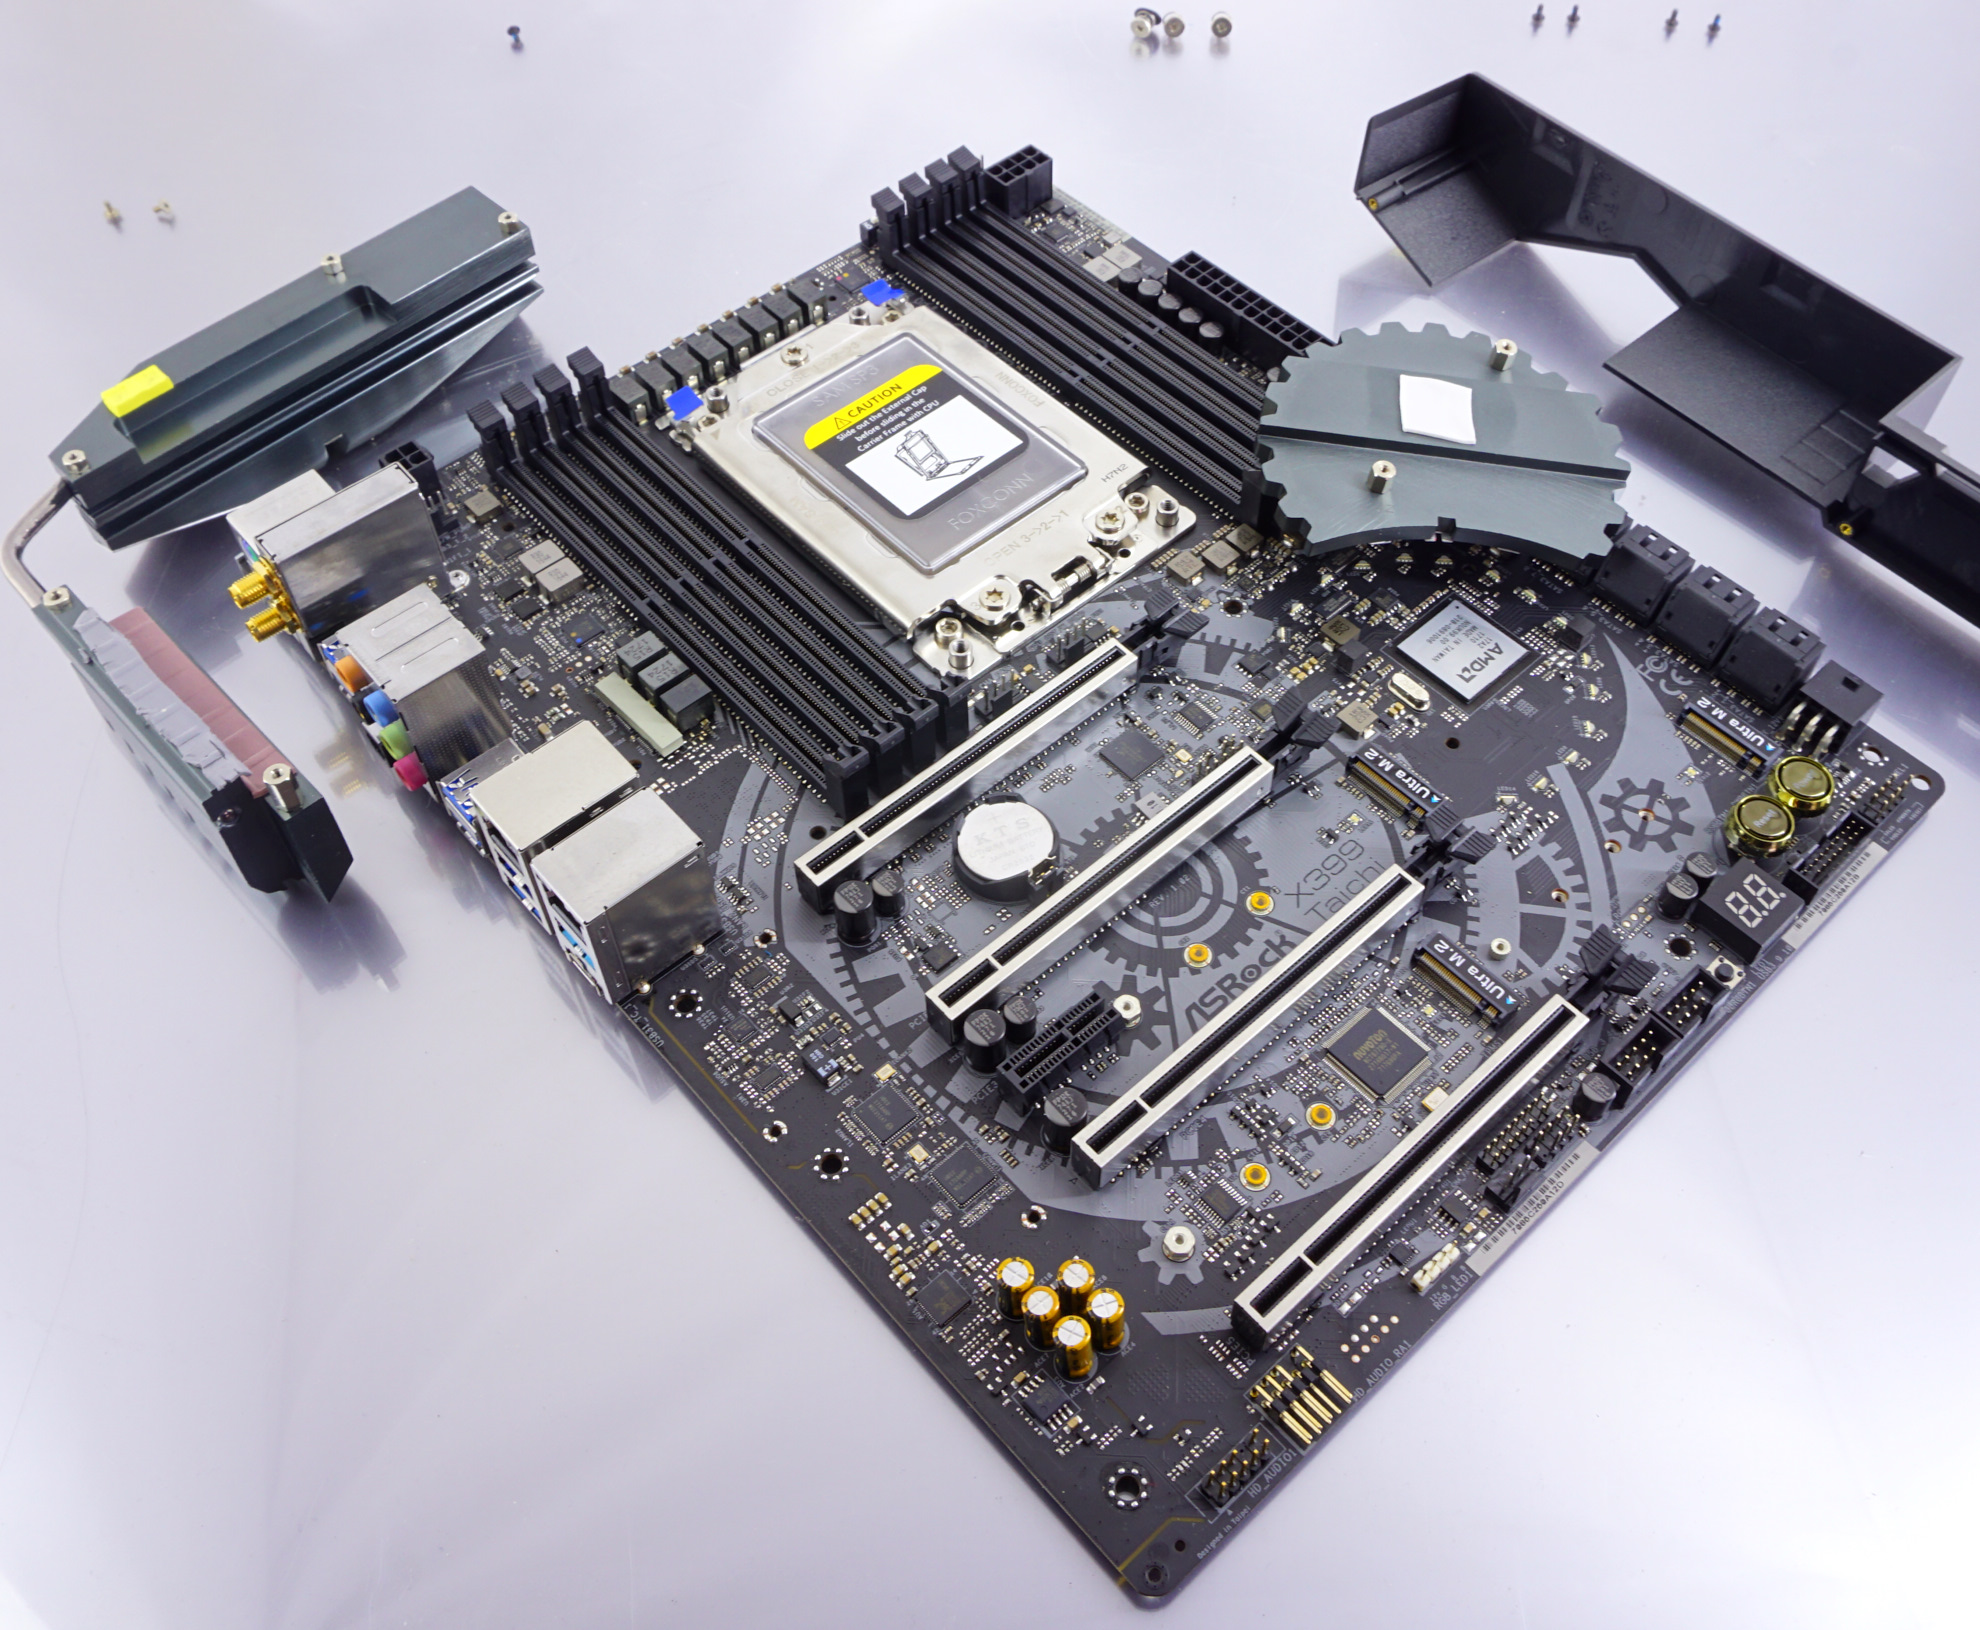 Visual Inspection - The ASRock X399 Taichi Motherboard